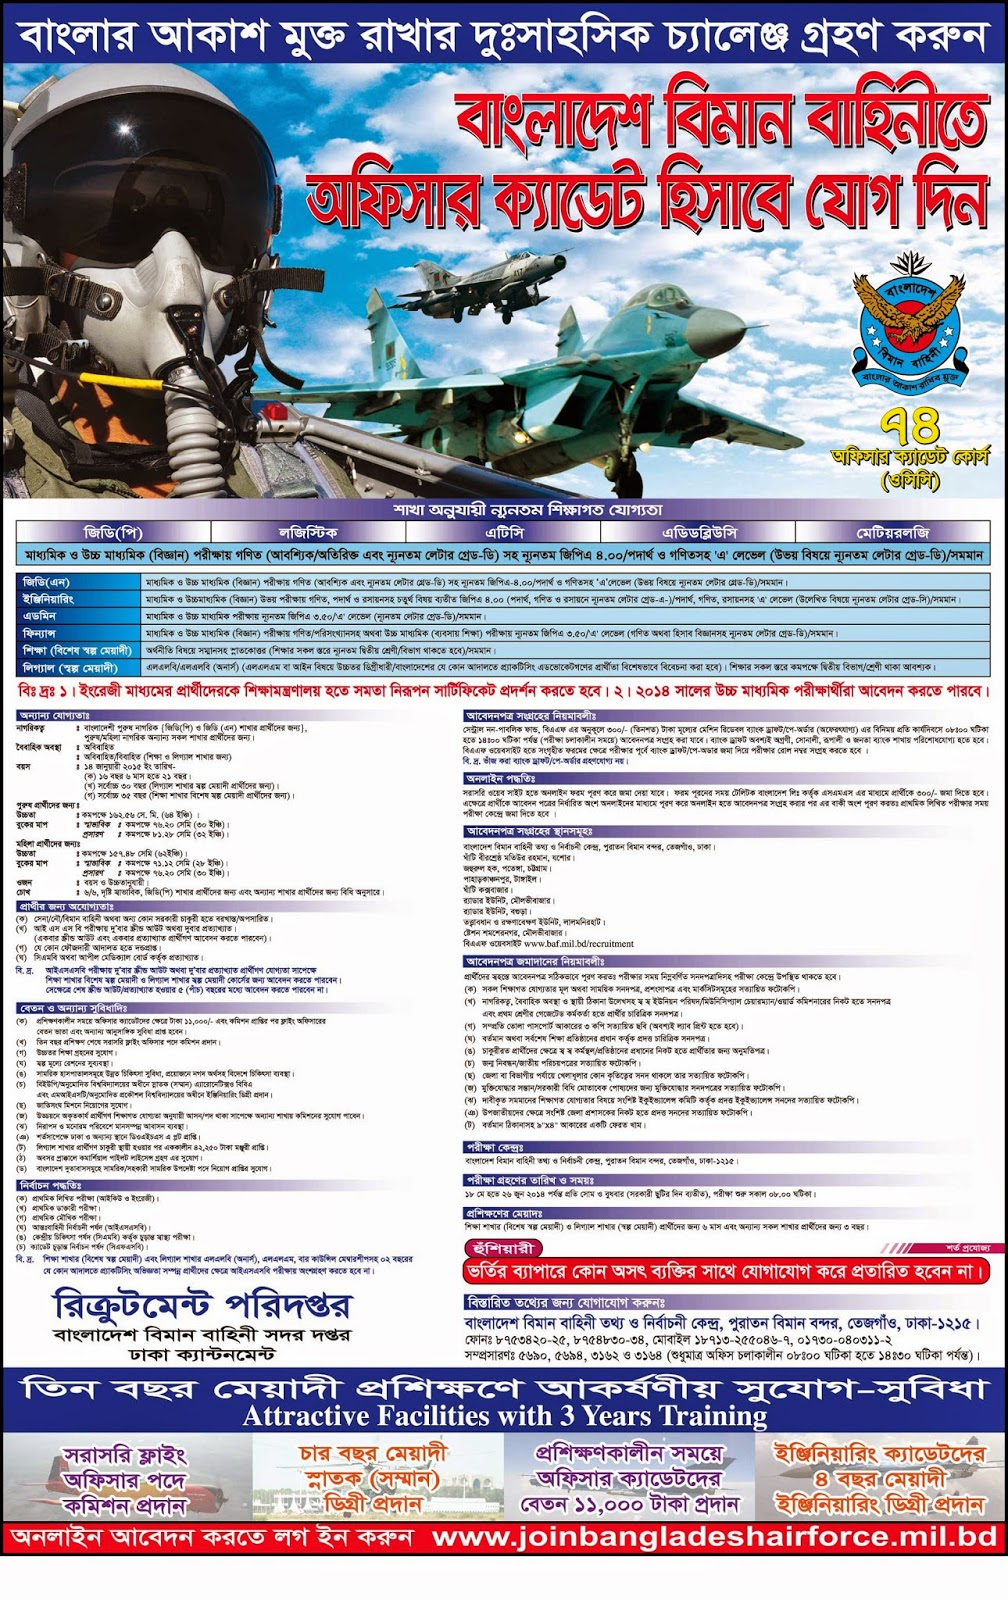 74 OCC Bangladesh Air Force Circular for Officer and Pilot 2014